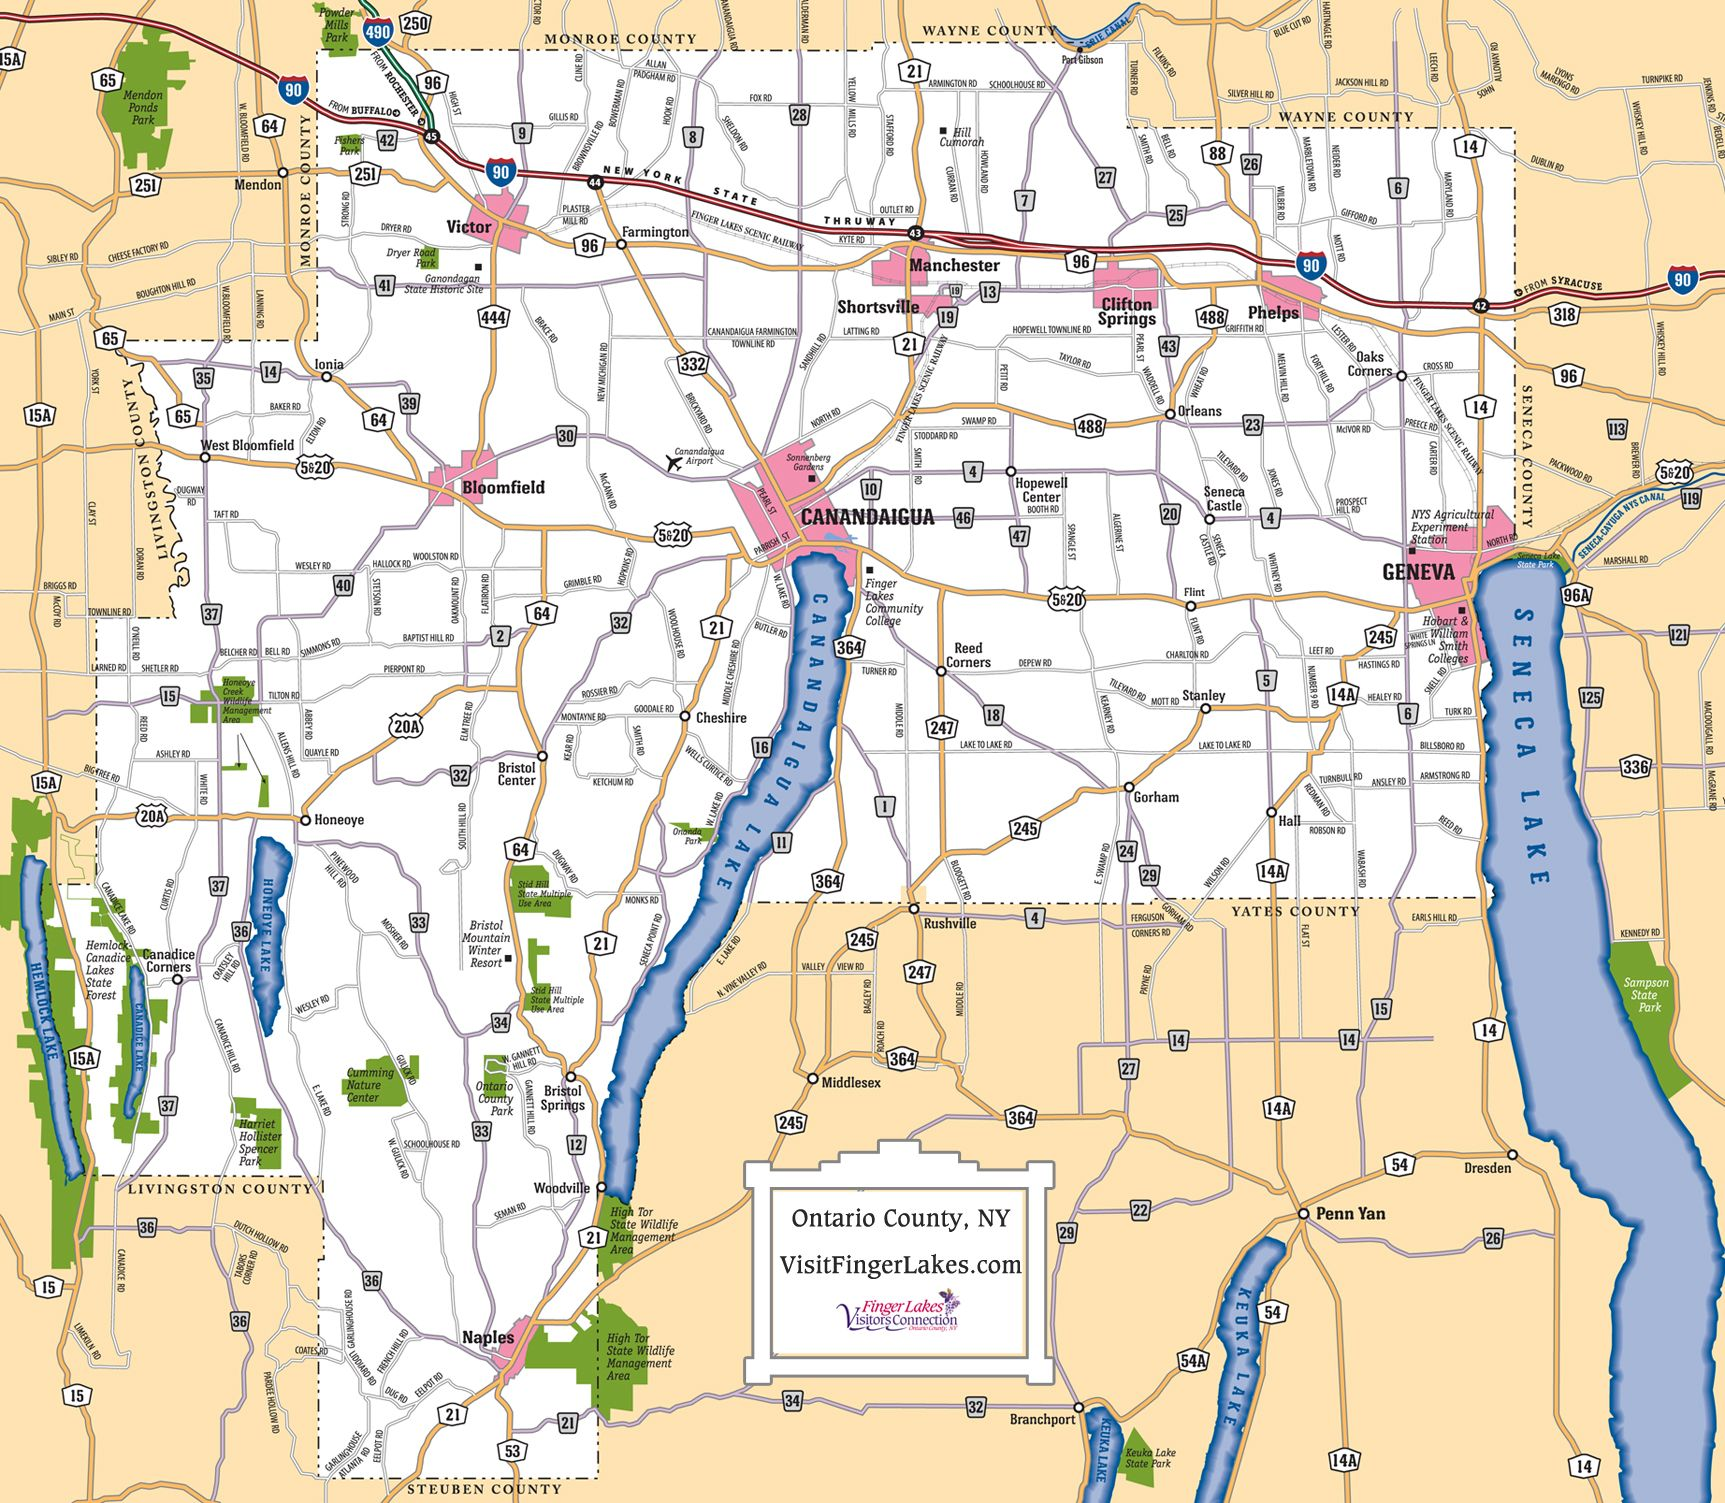 ontariocountynymap.jpg 1,725×1,503 pixels (With images